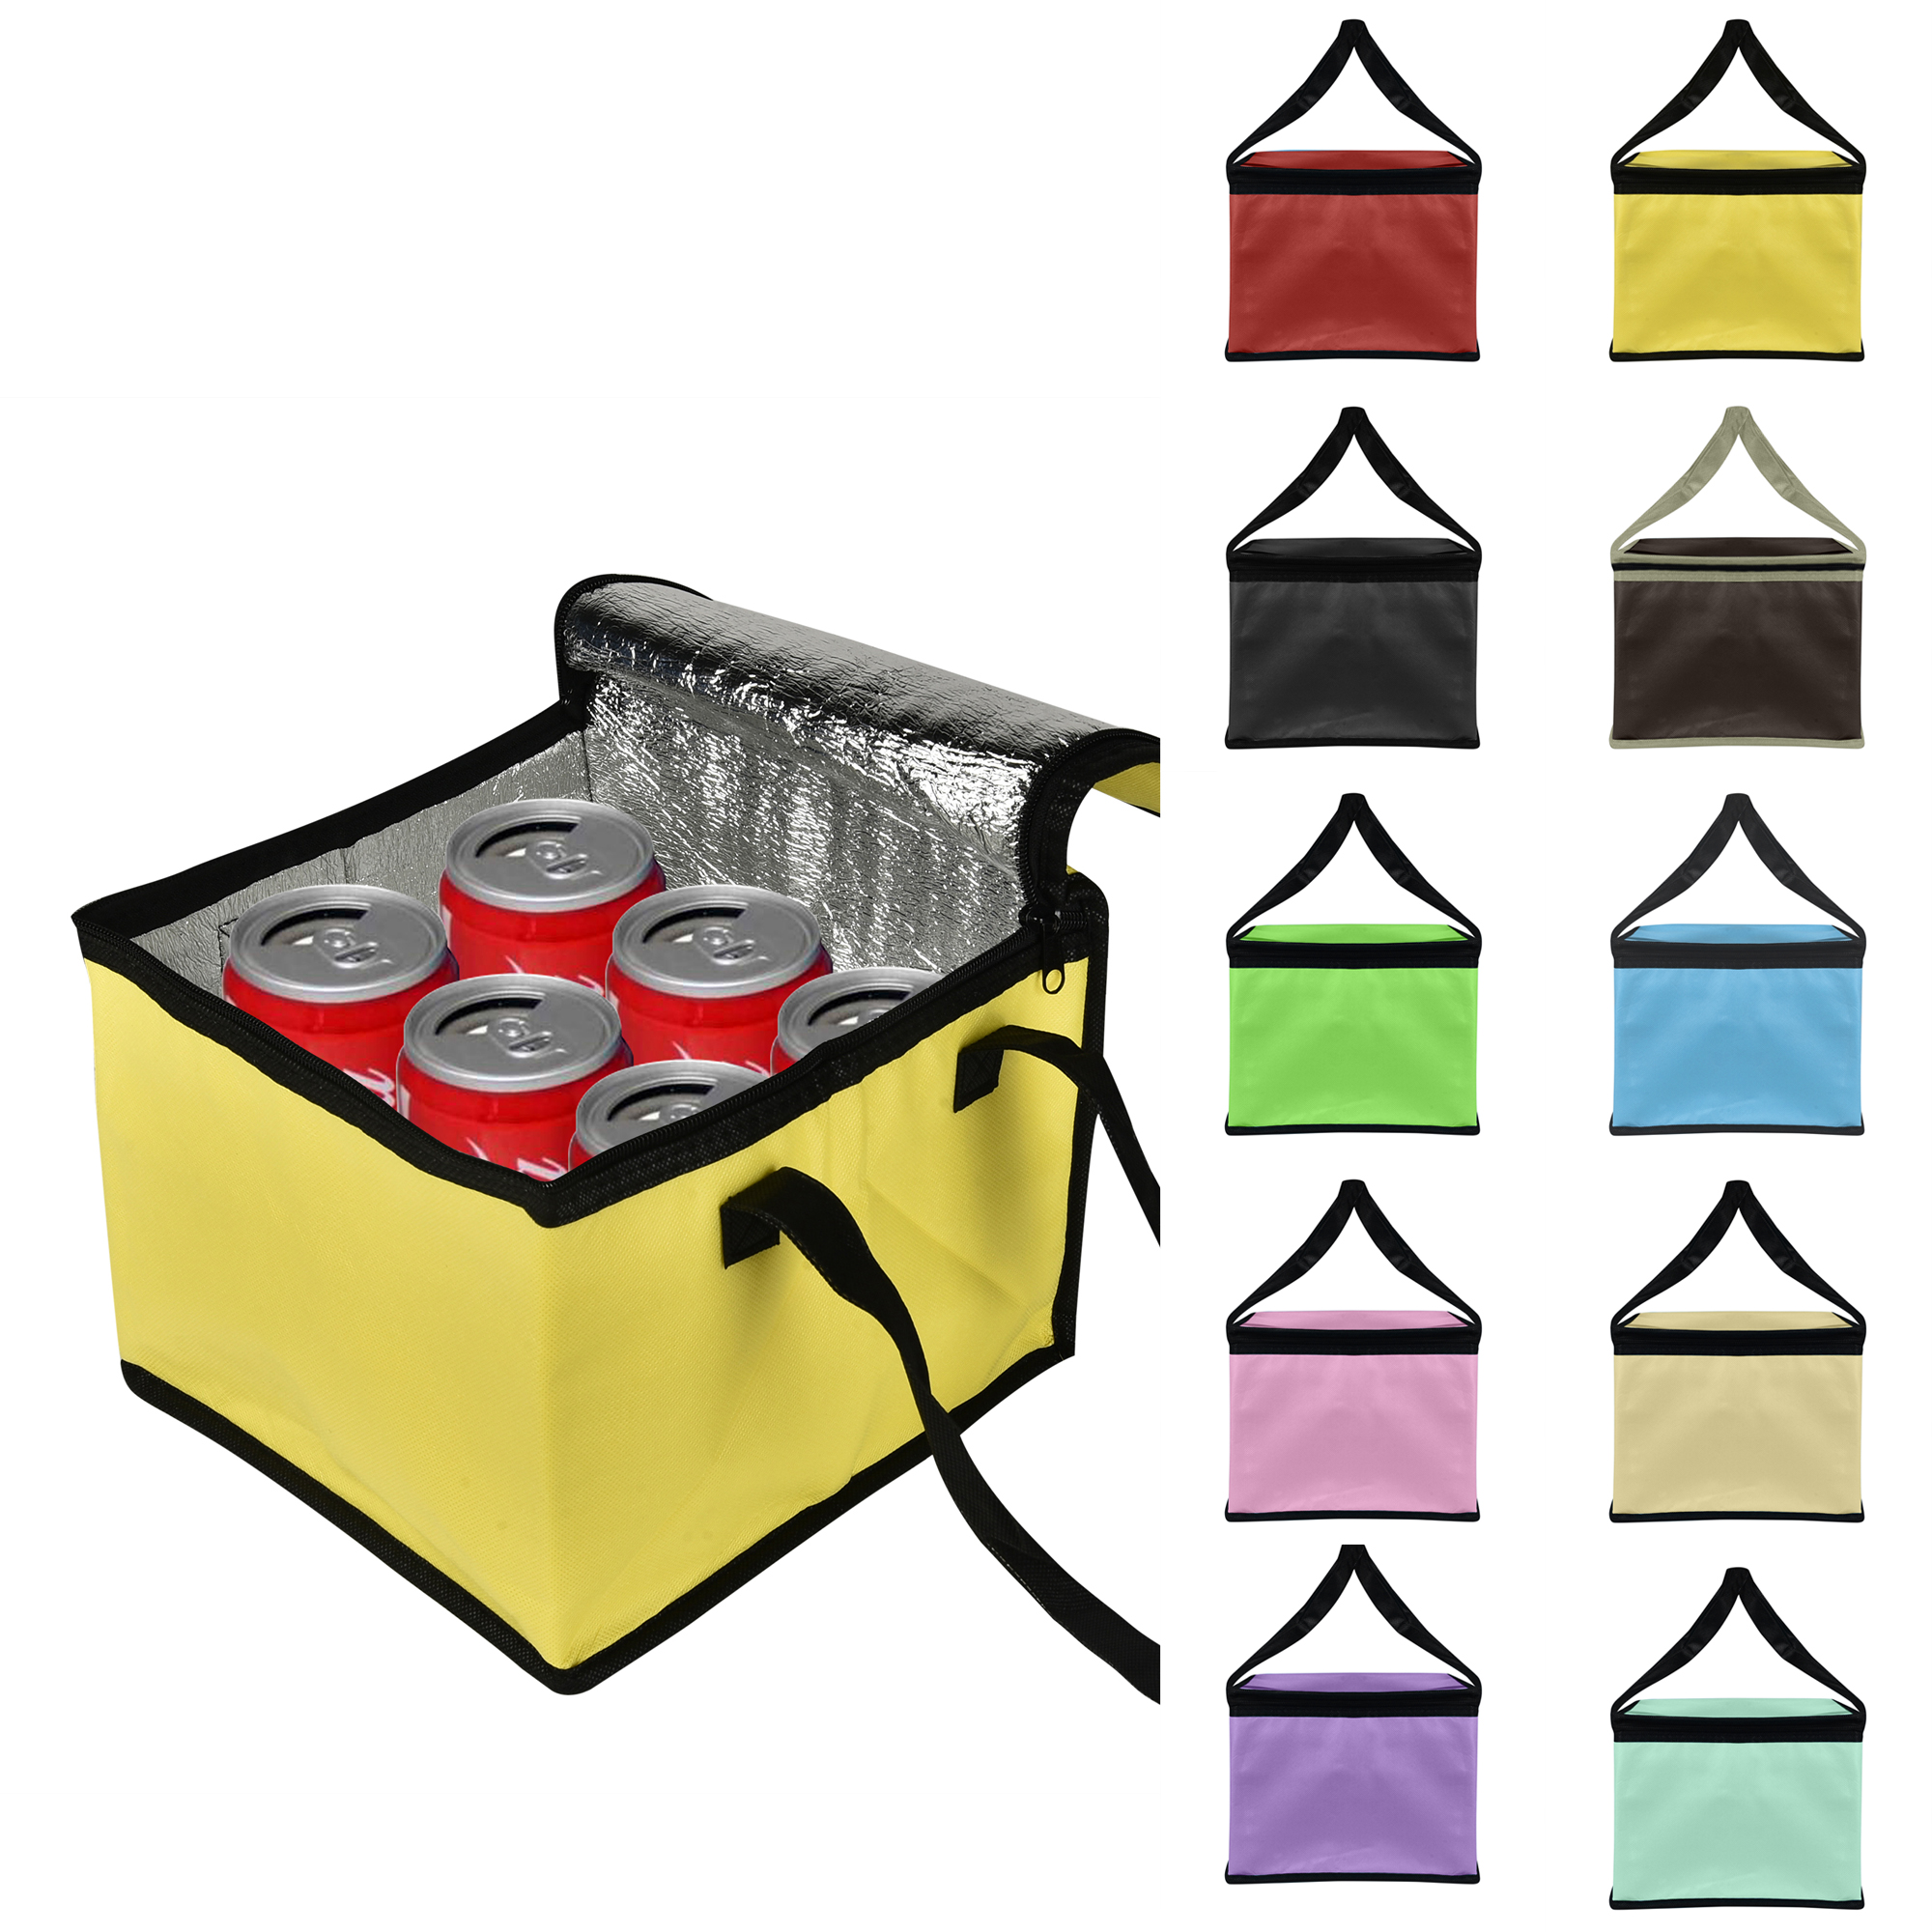 CUH Portable Cool Bag Insulated Cooler Food Can Drink Lunch Picnic Hiking 21L /12.5L